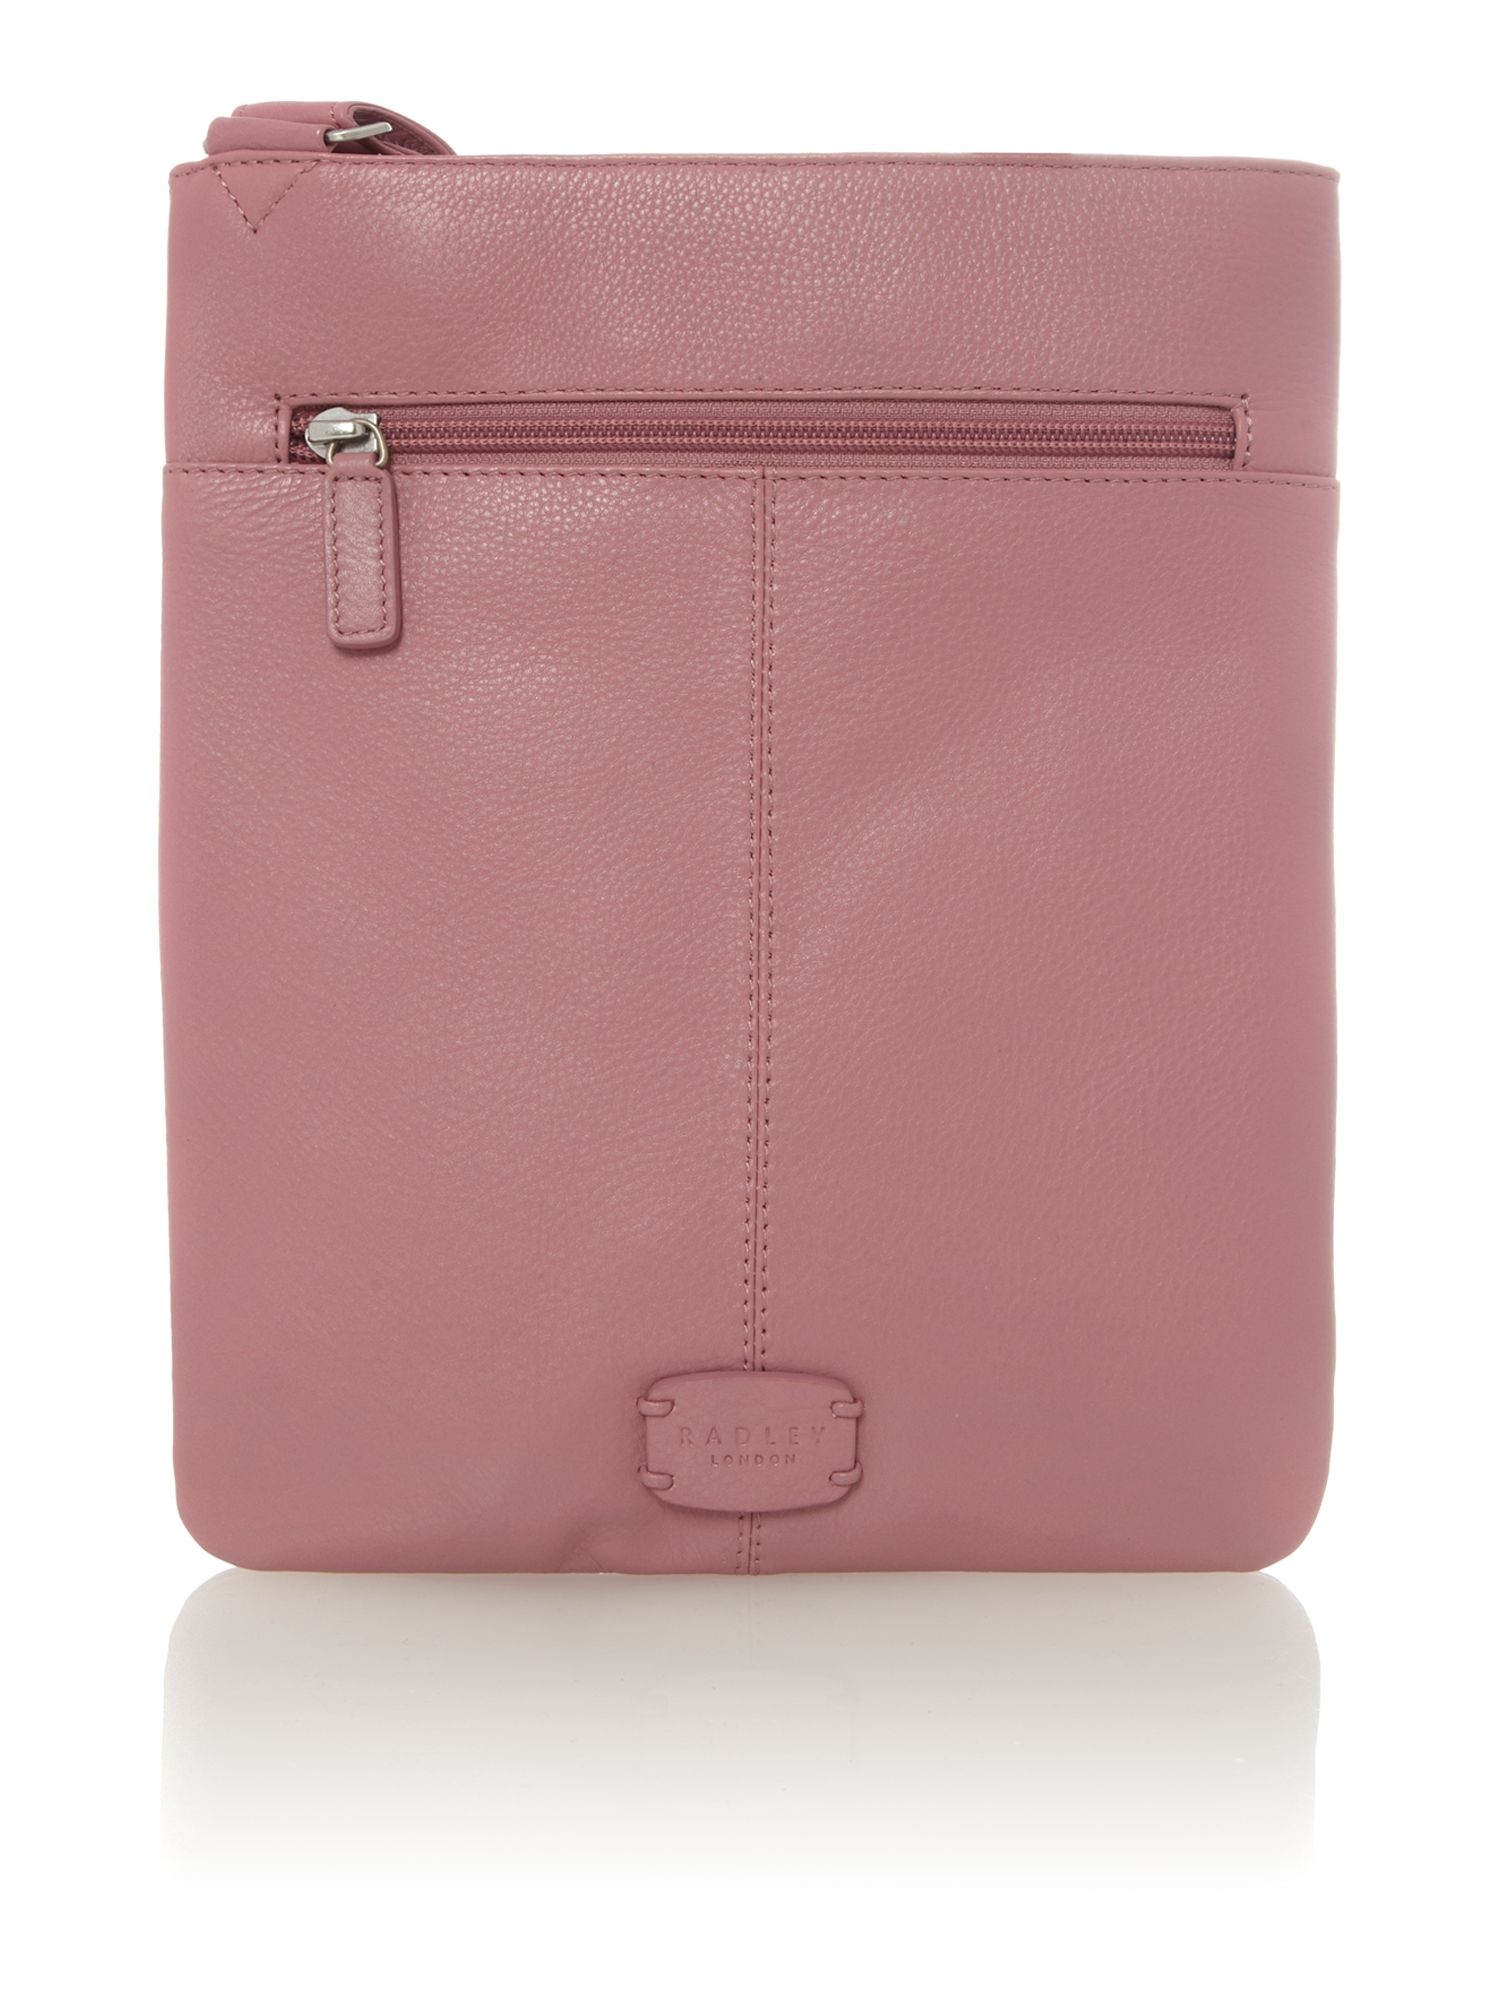 Pink medium crossbody pocket bag